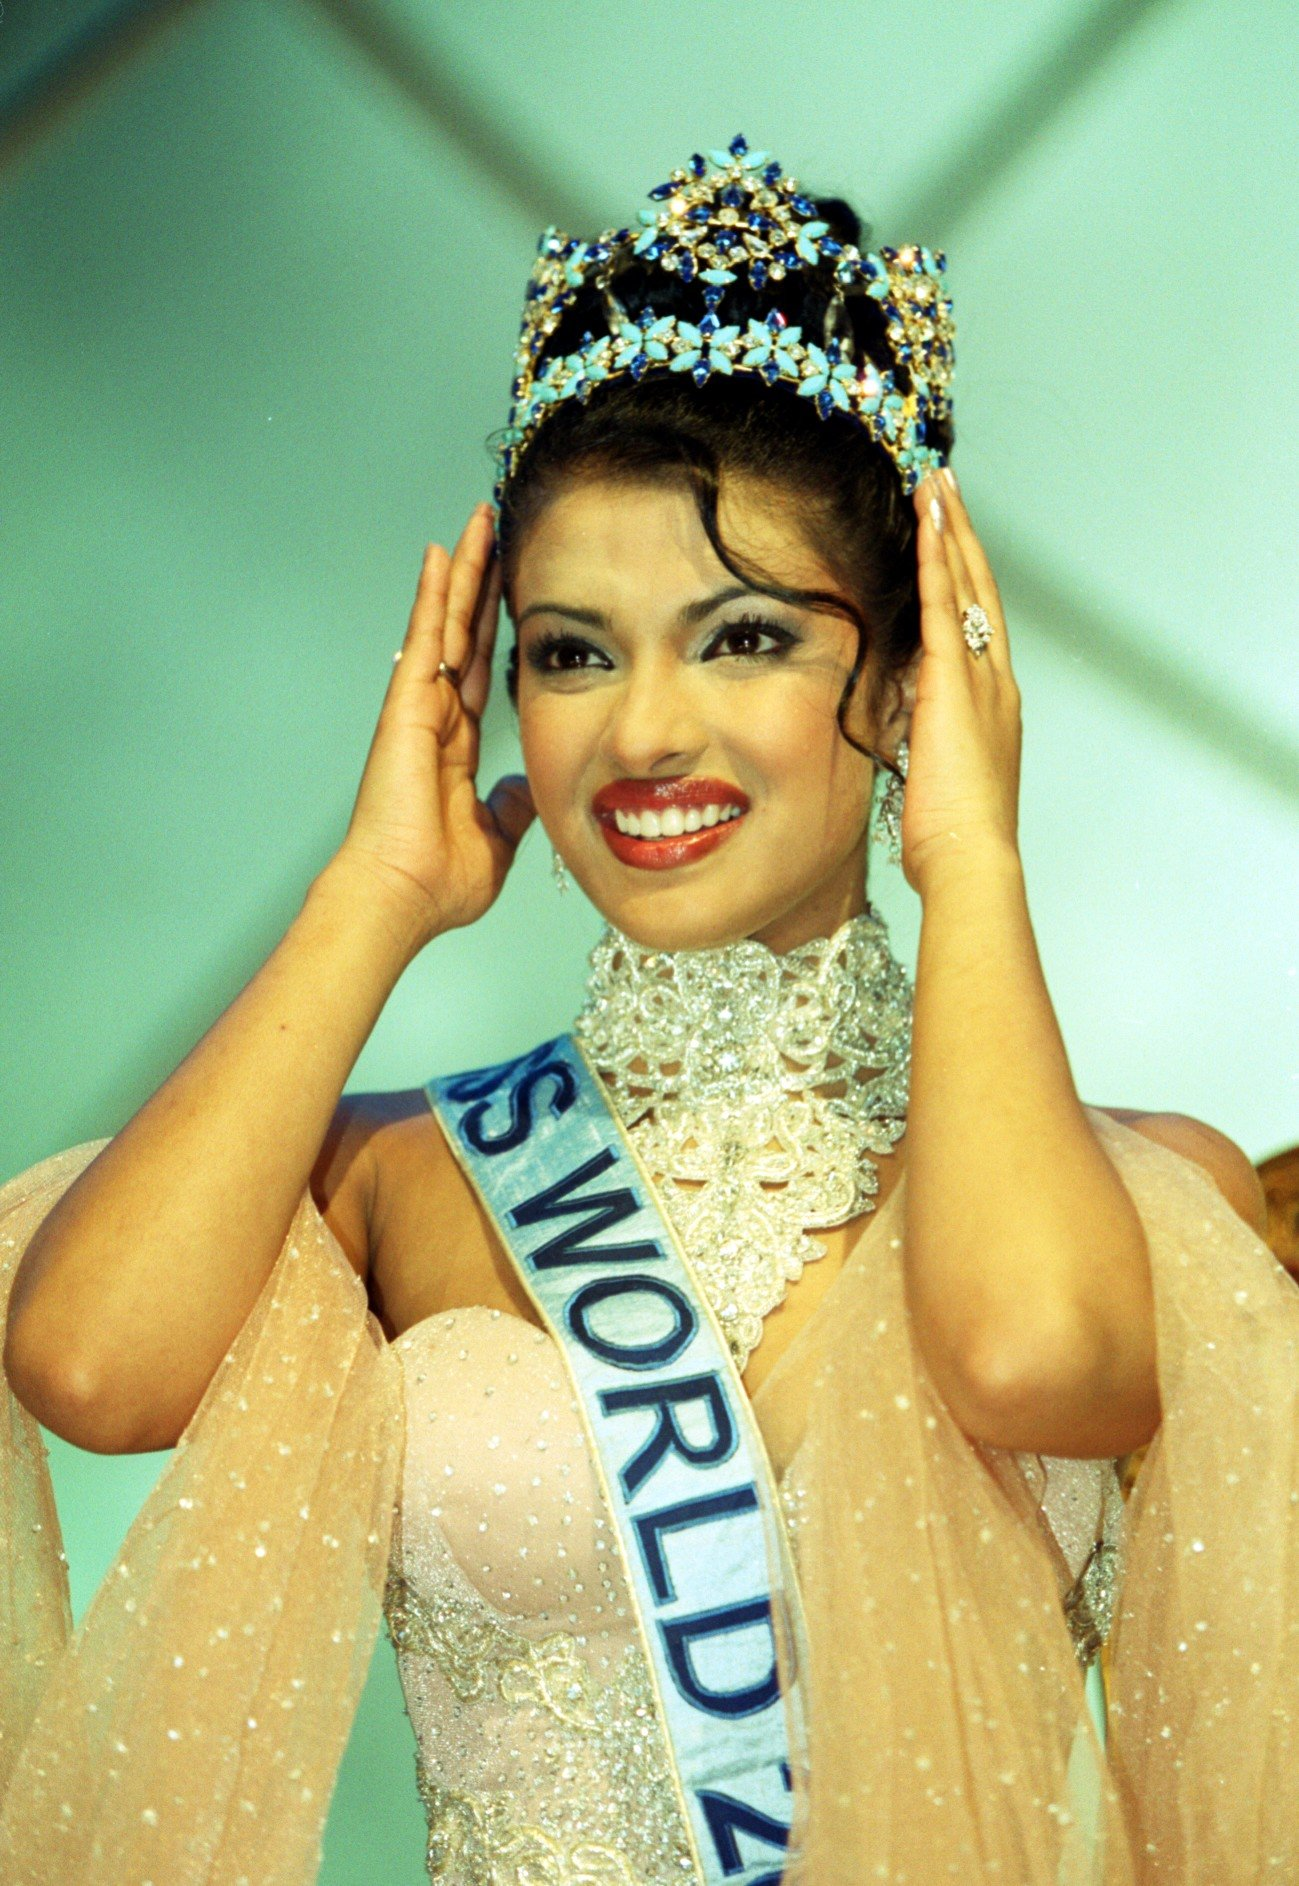 Priyanka Chopra during her crowning moment in Miss World 2002. | Photo: Getty Images